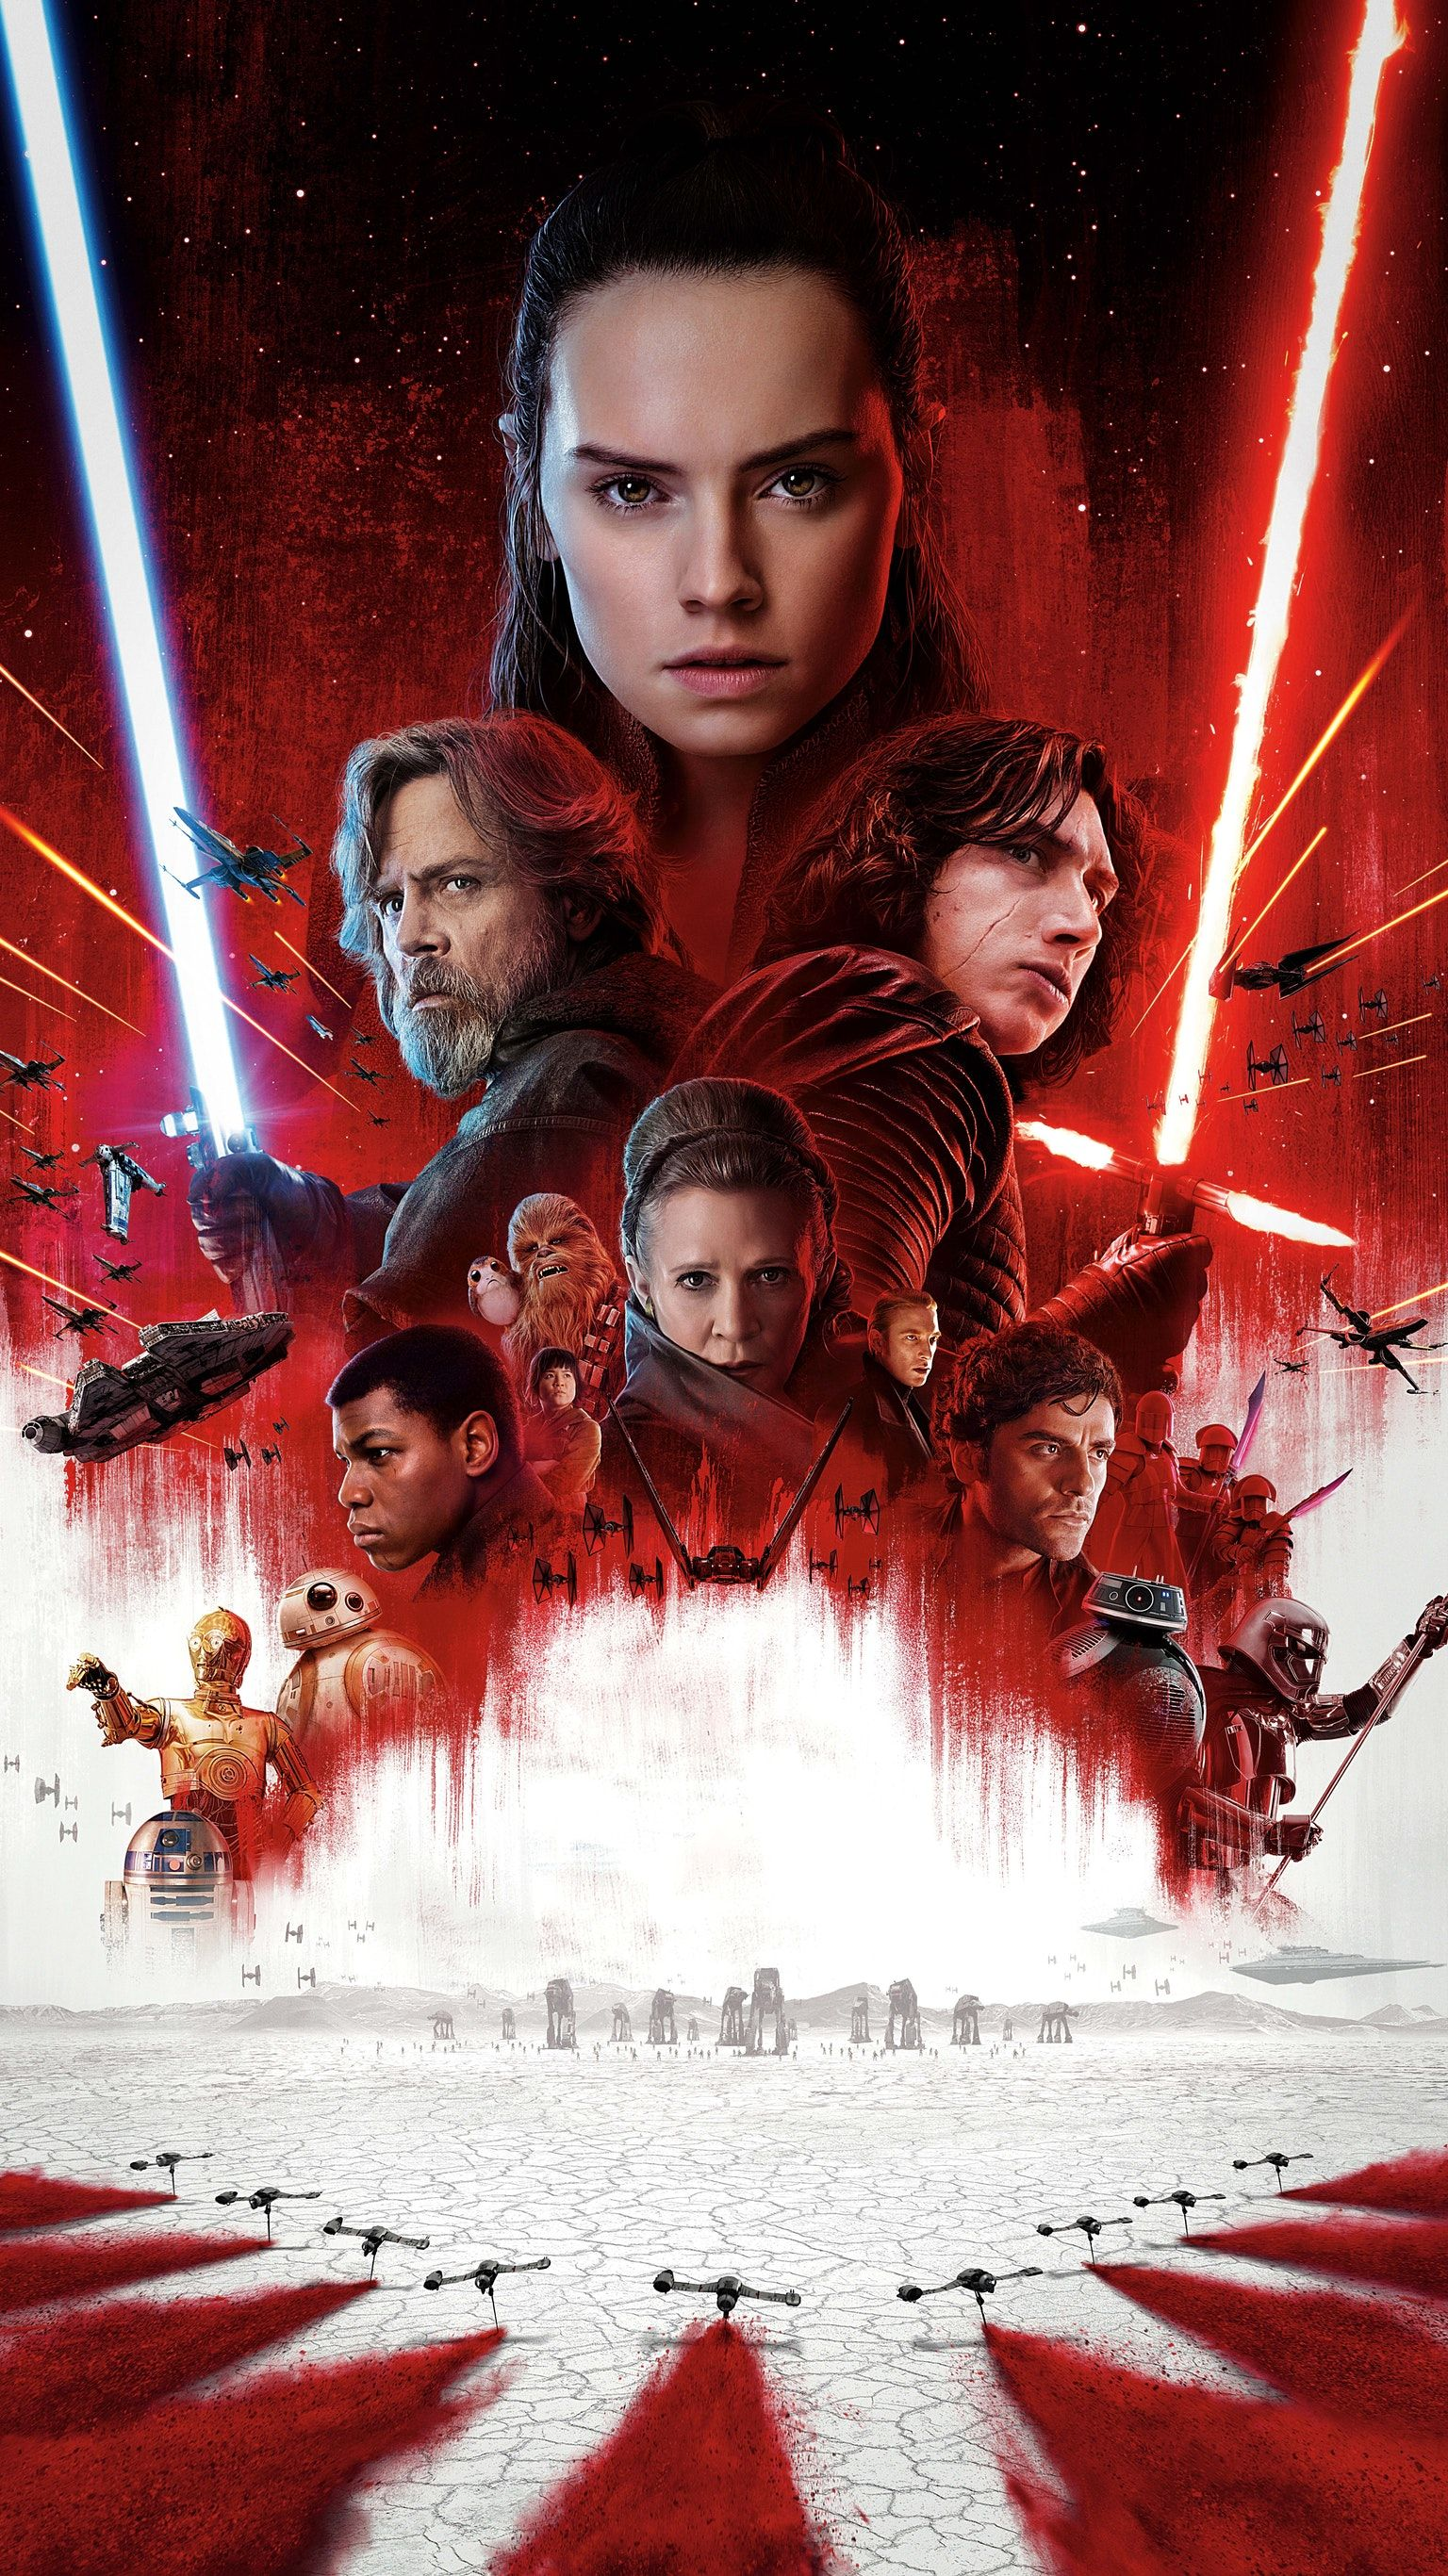 Star Wars The Last Jedi 2017 Phone Wallpaper Moviemania Star Wars Watch Star Wars Movie New Star Wars